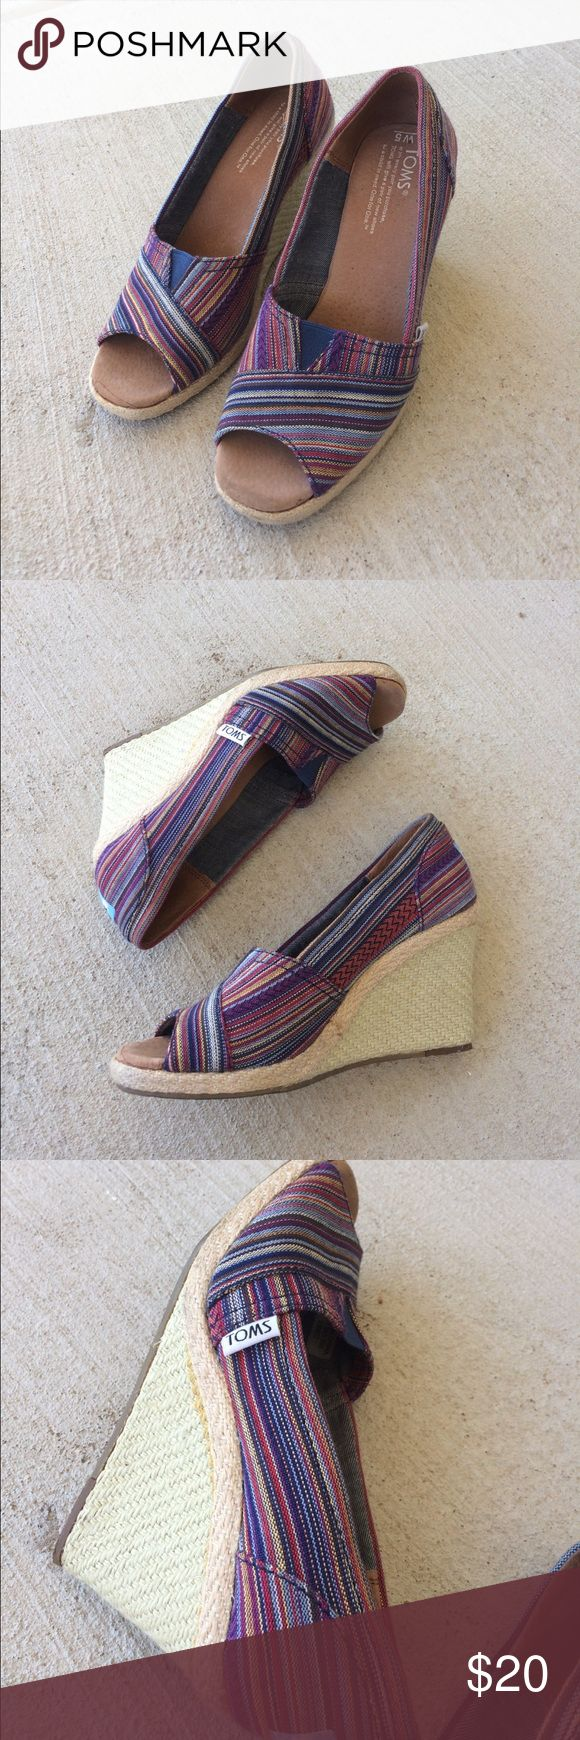 🎀 TOMS Wedge Heels Beautiful multicolor TOMS wedges. Slight stain wear on the toe of the right shoe. Also a little staining on the wedge of the left shoe. Otherwise great condition. TOMS Shoes Wedges